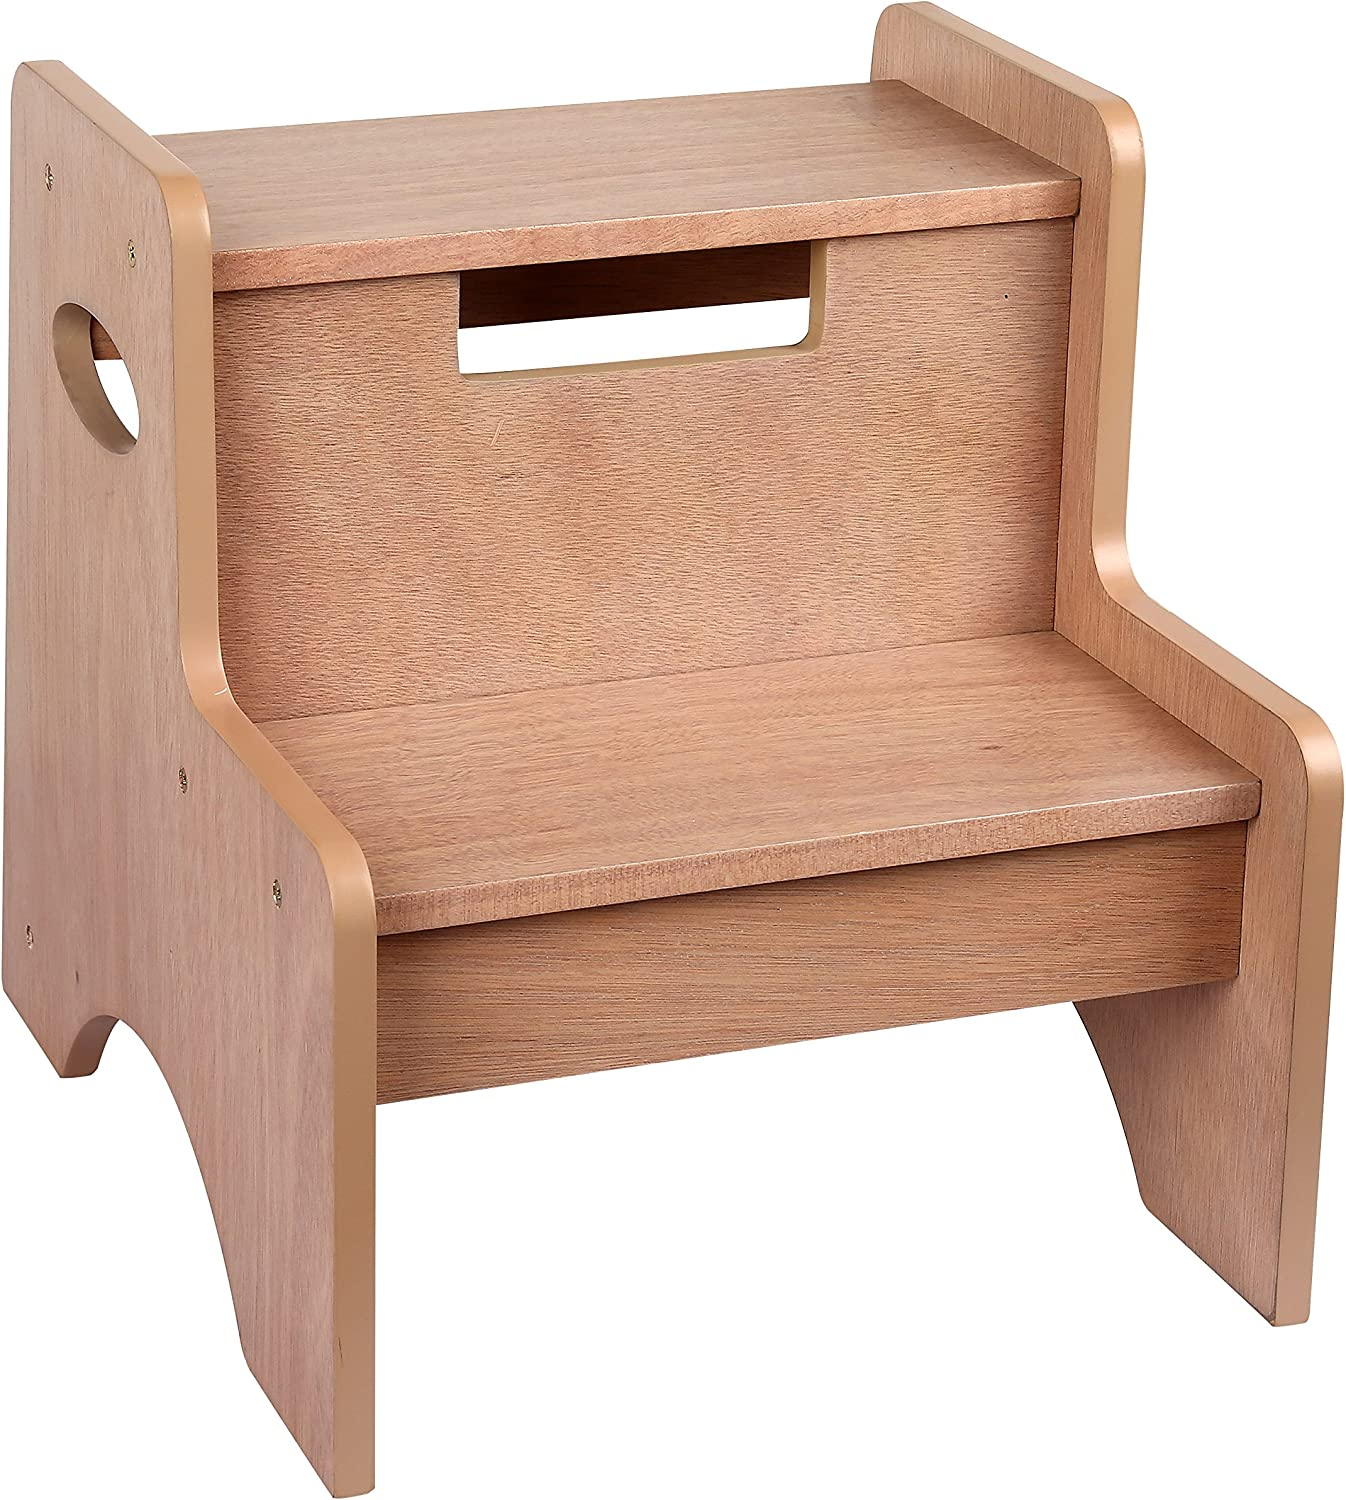 Two-Step Stool by Wildkin, Wooden Step Stool for Kids and Adults, Home and Office, 14-inches High, Ages 3+